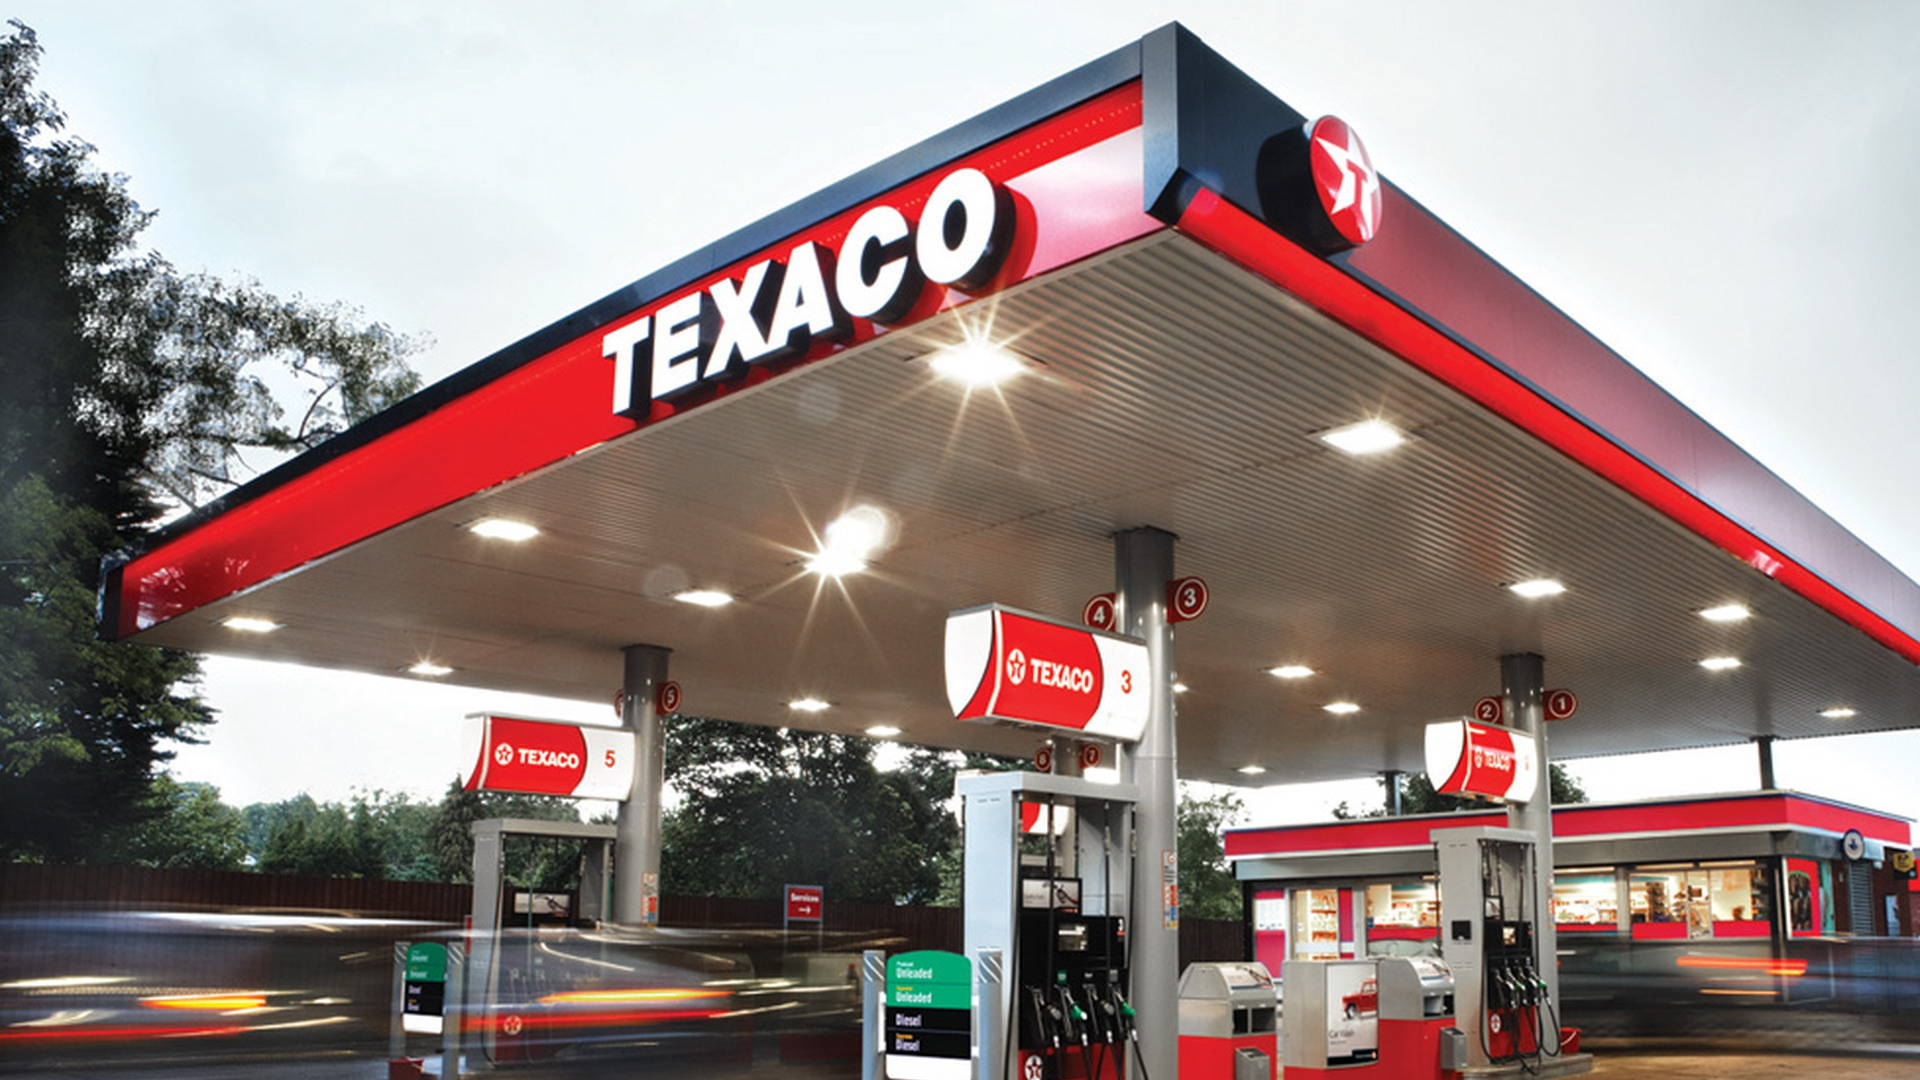 Fueling Fascism: The Secret History of How Texaco Supplied Oil to